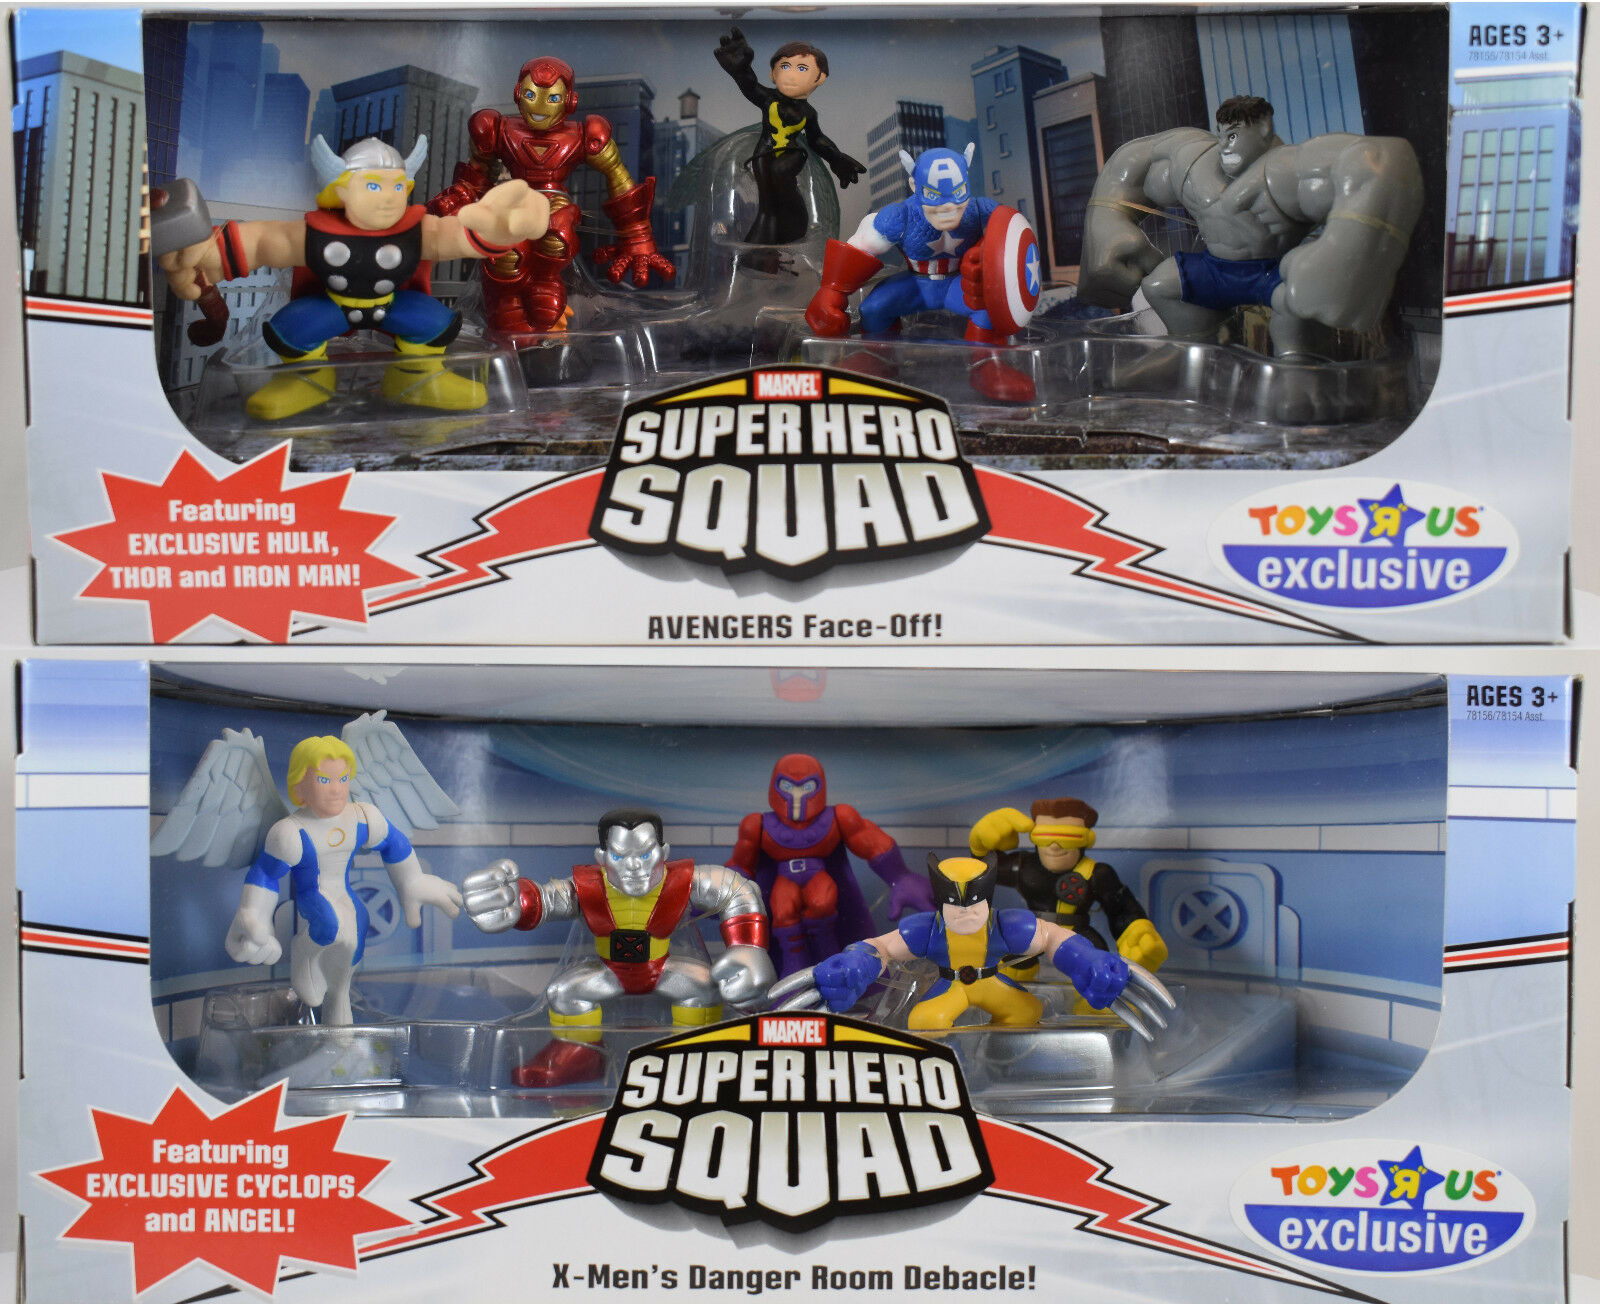 Marvel Super Hero Squad Toys R Us Exclusive 2 set - New Sealed